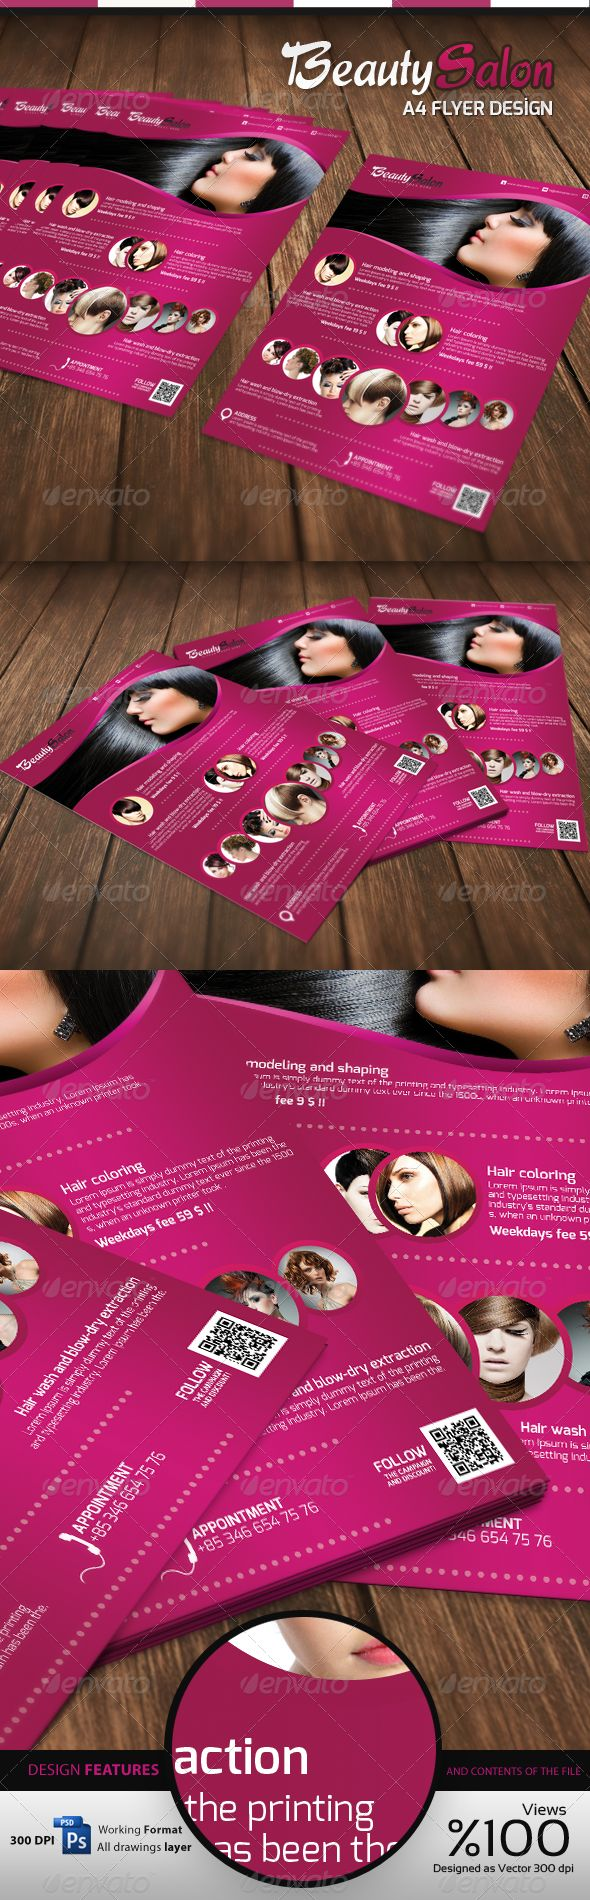 Beauty Salon - A4 Flyer. Customizable professional template for a flyer. #FlyerTemplate #flyer #party #GraphicTemplate #design #PrintDesign #A4Flyer #beauty #BeautySalon #BeautySalonA4Flyer #BeautySalonFlyer